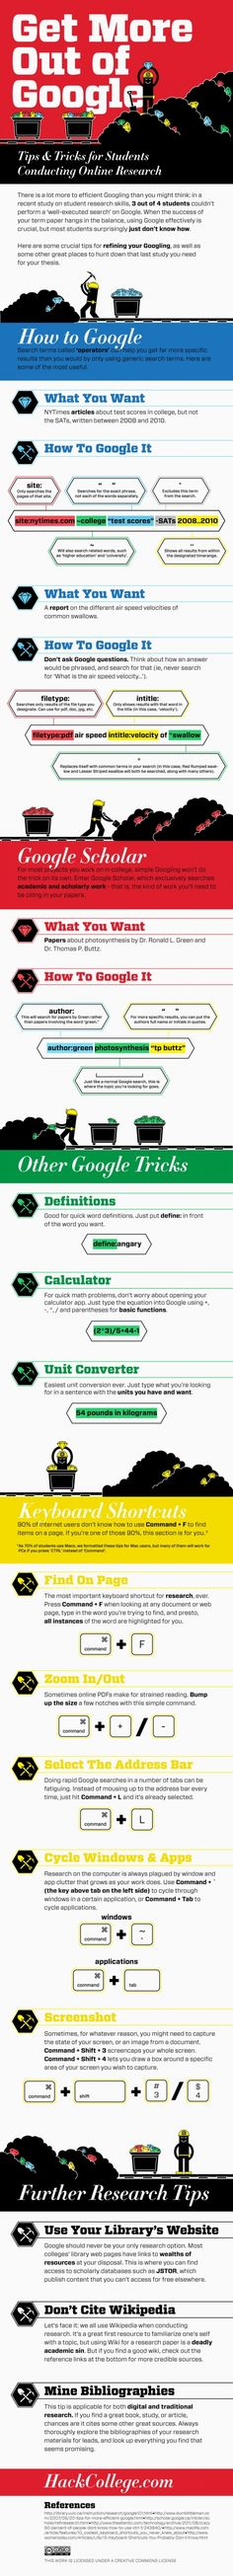 Infografic: How to get more out of Google